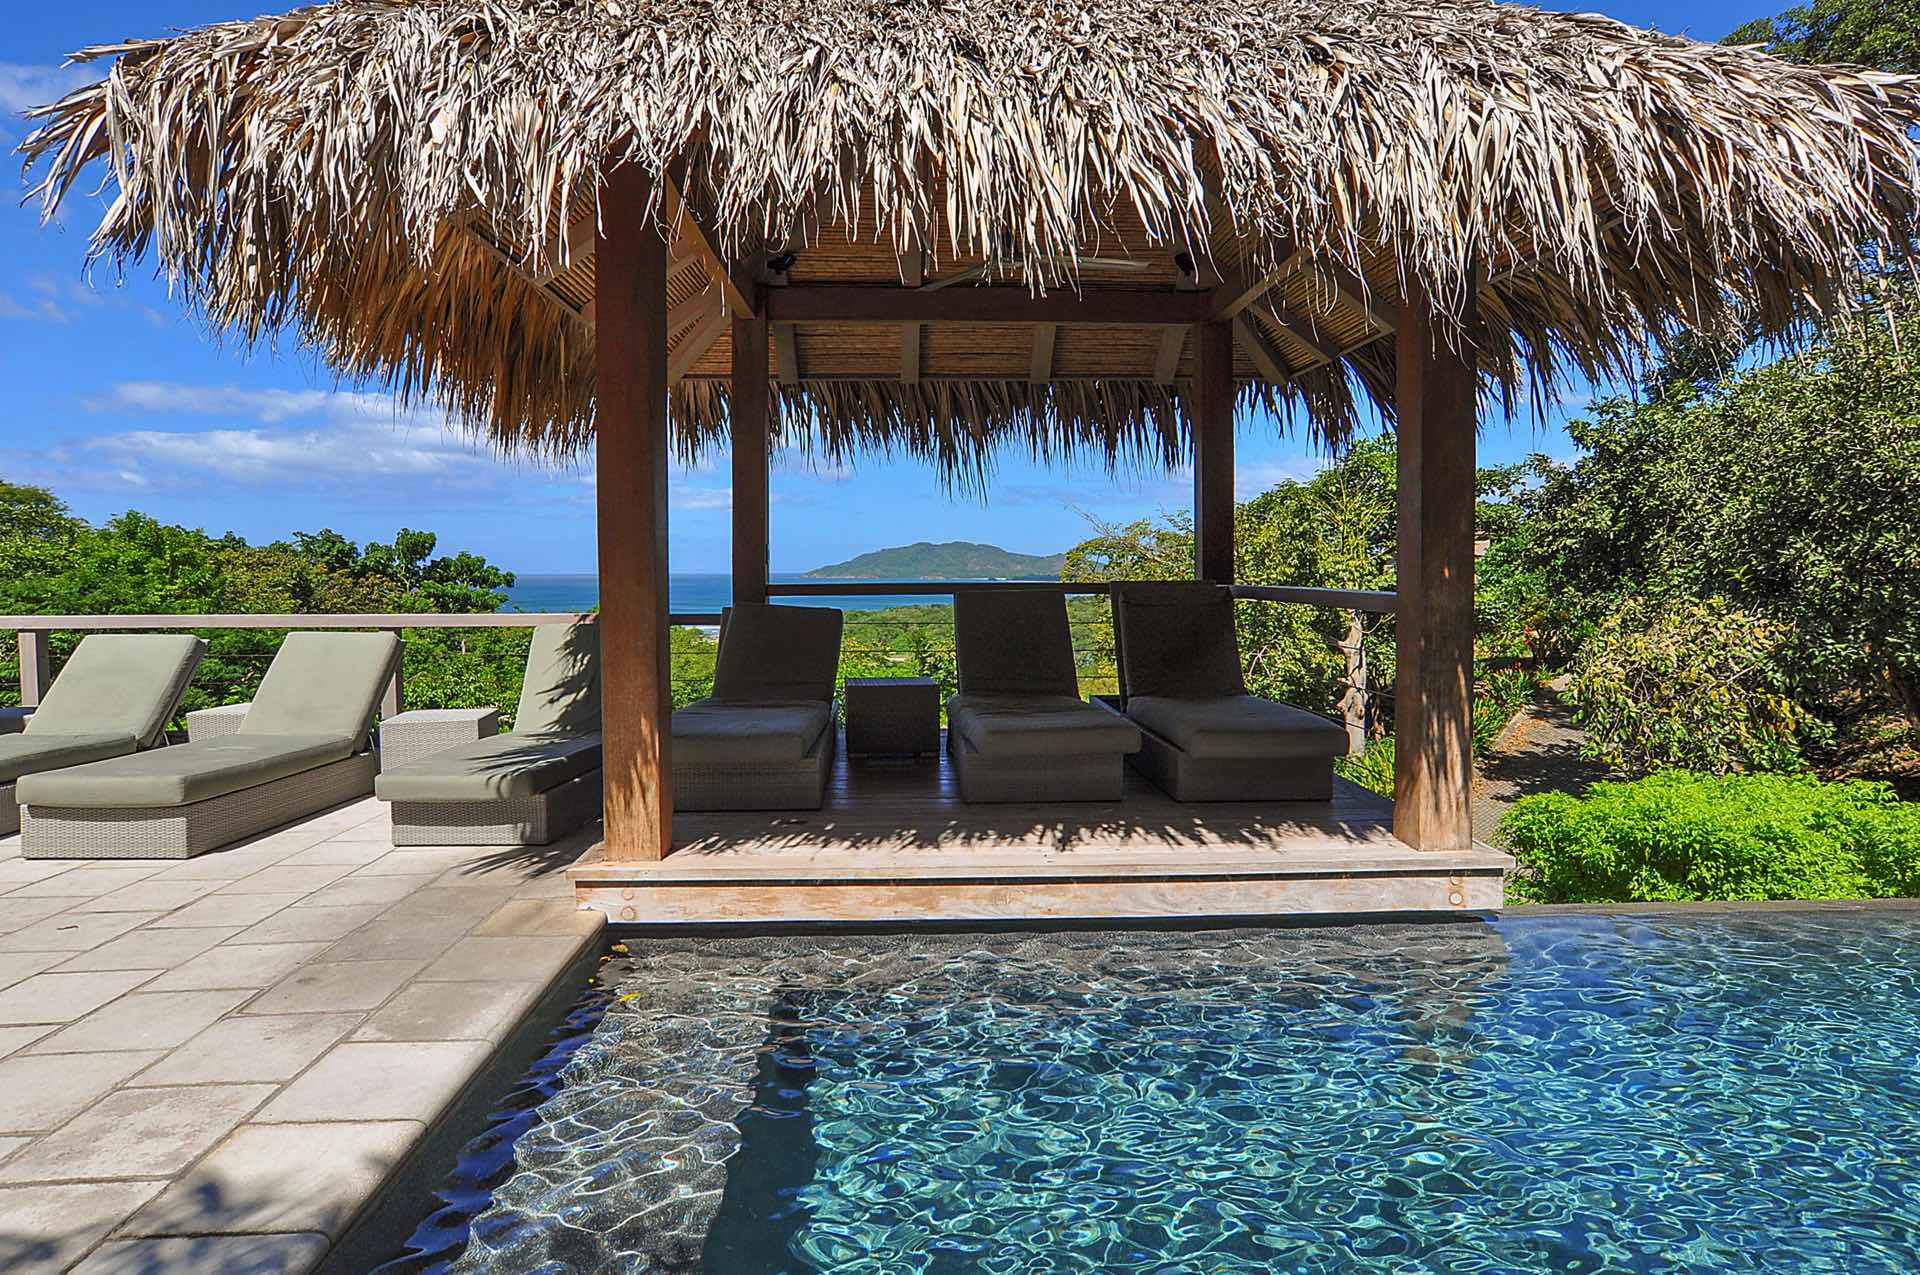 Resort pool with Palapa and BBQ